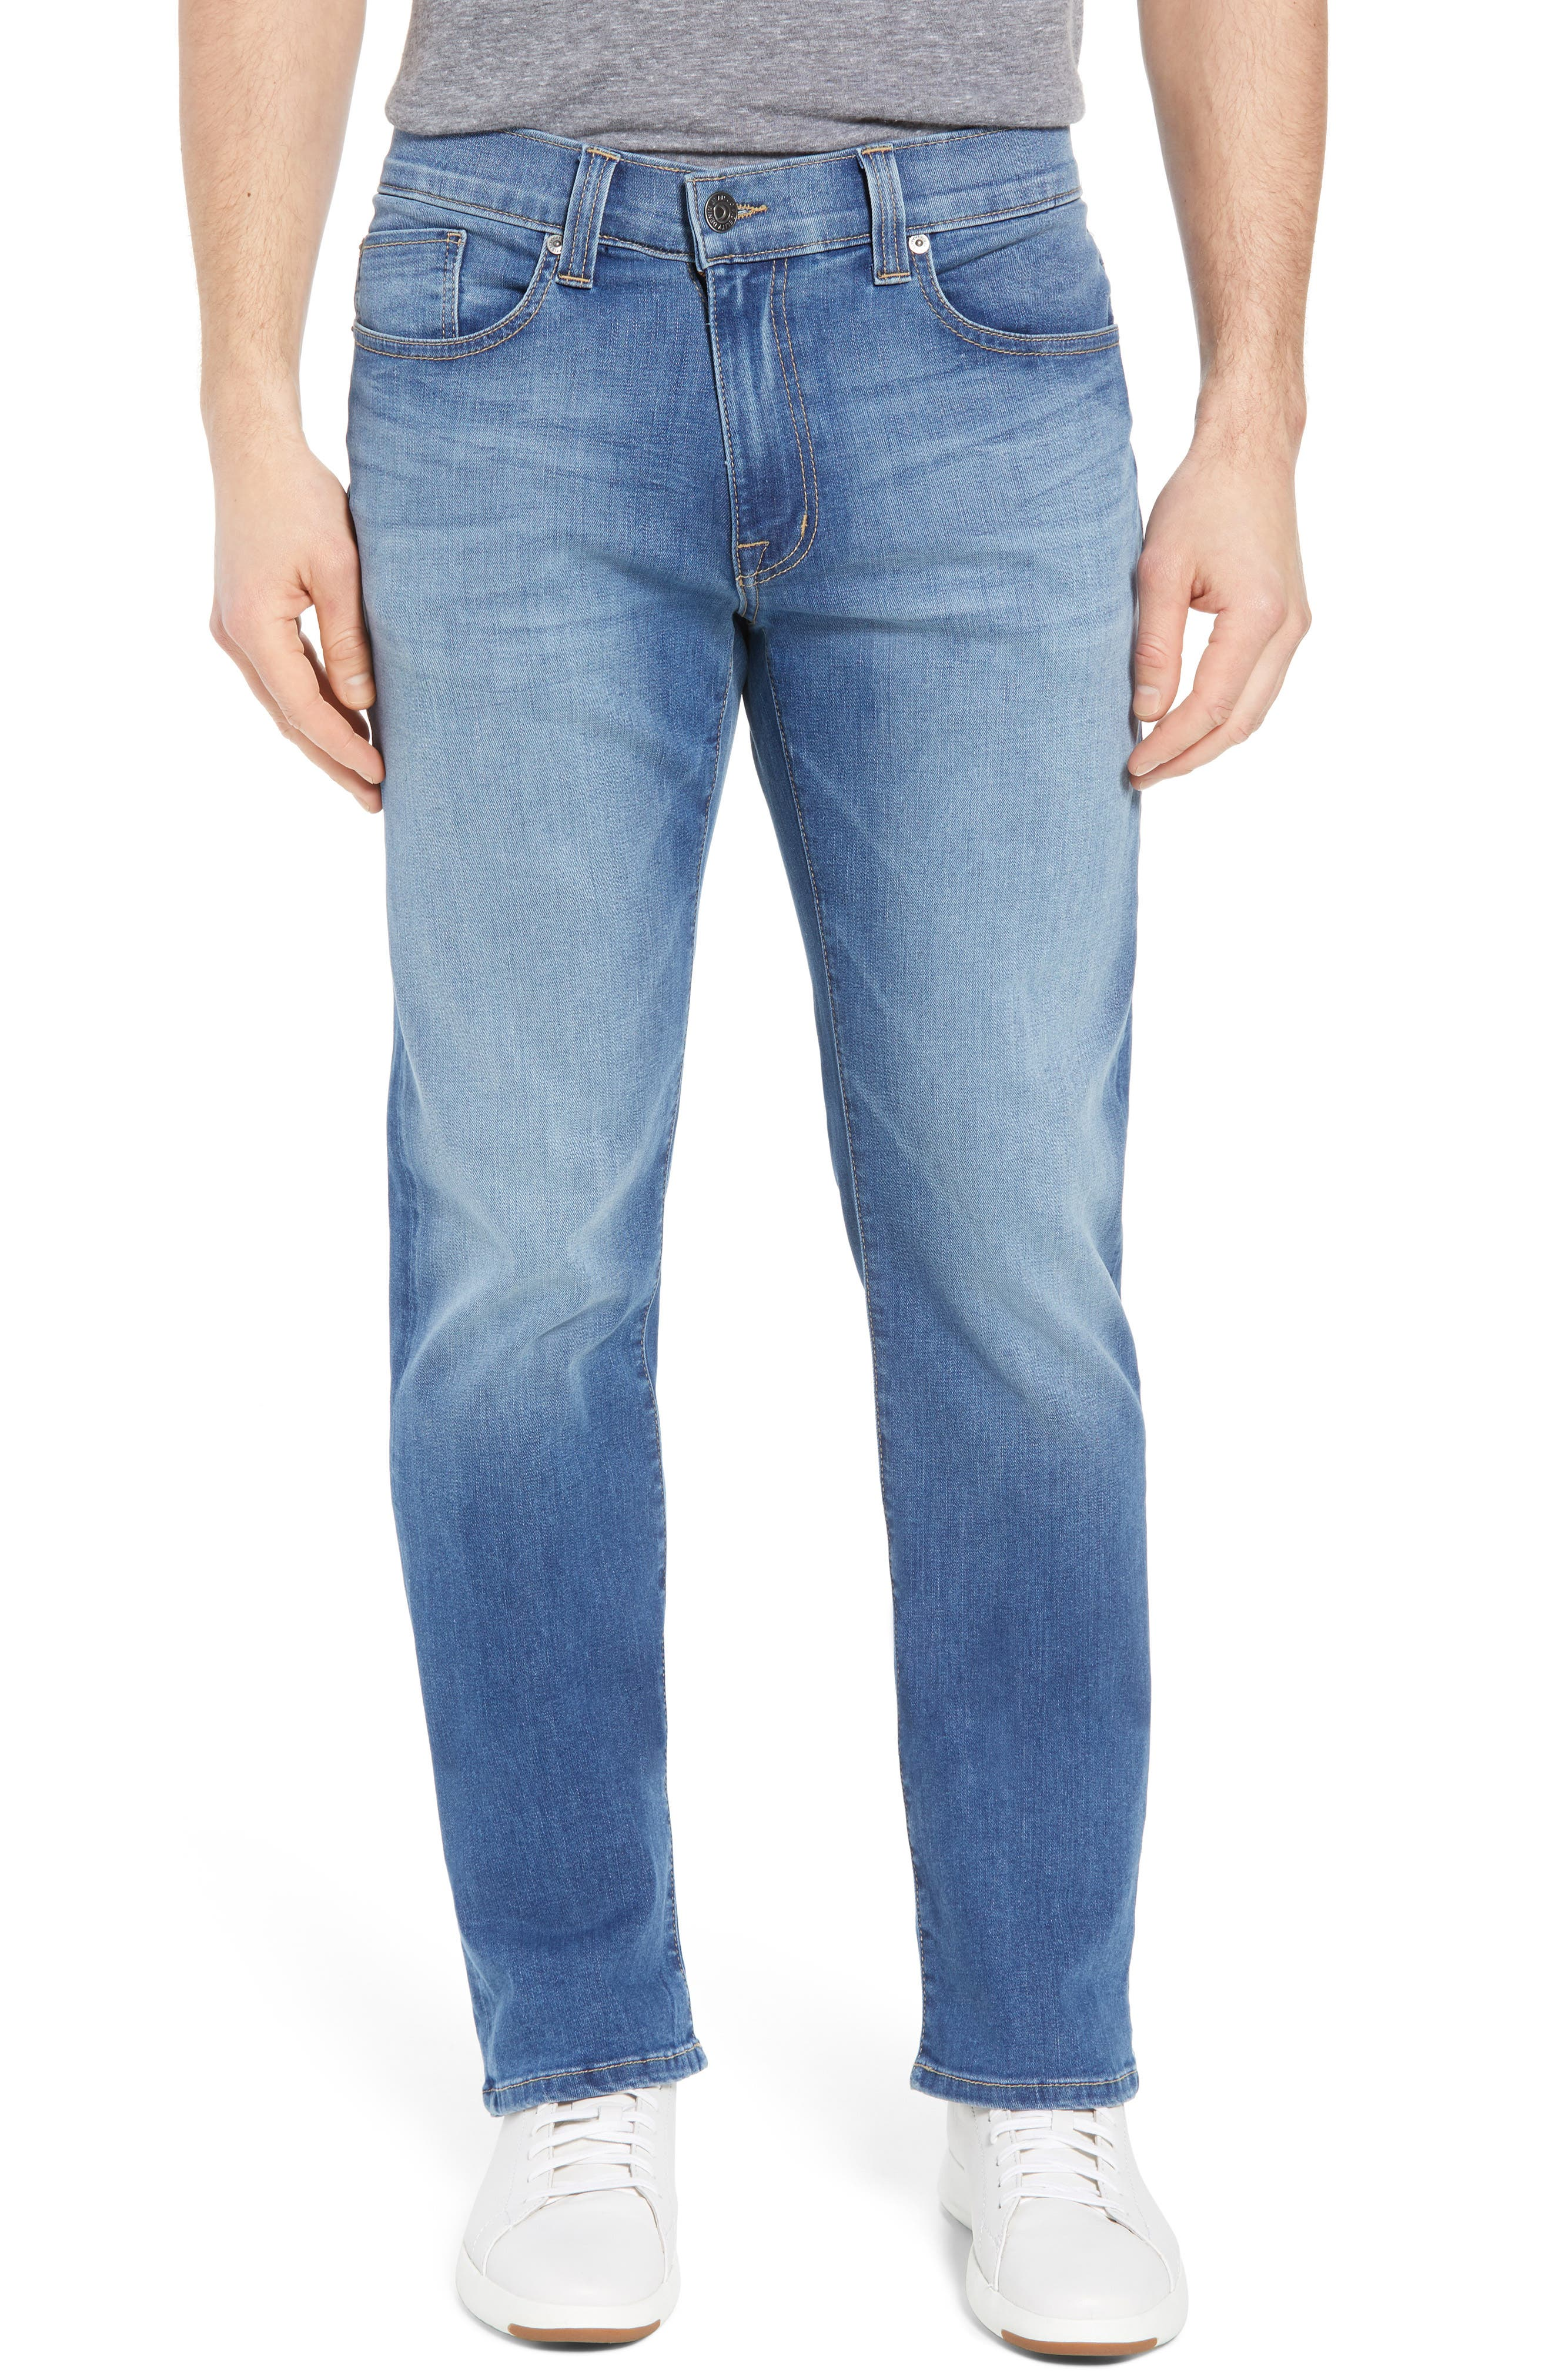 50-11 Relaxed Fit Jeans,                         Main,                         color, Elysium